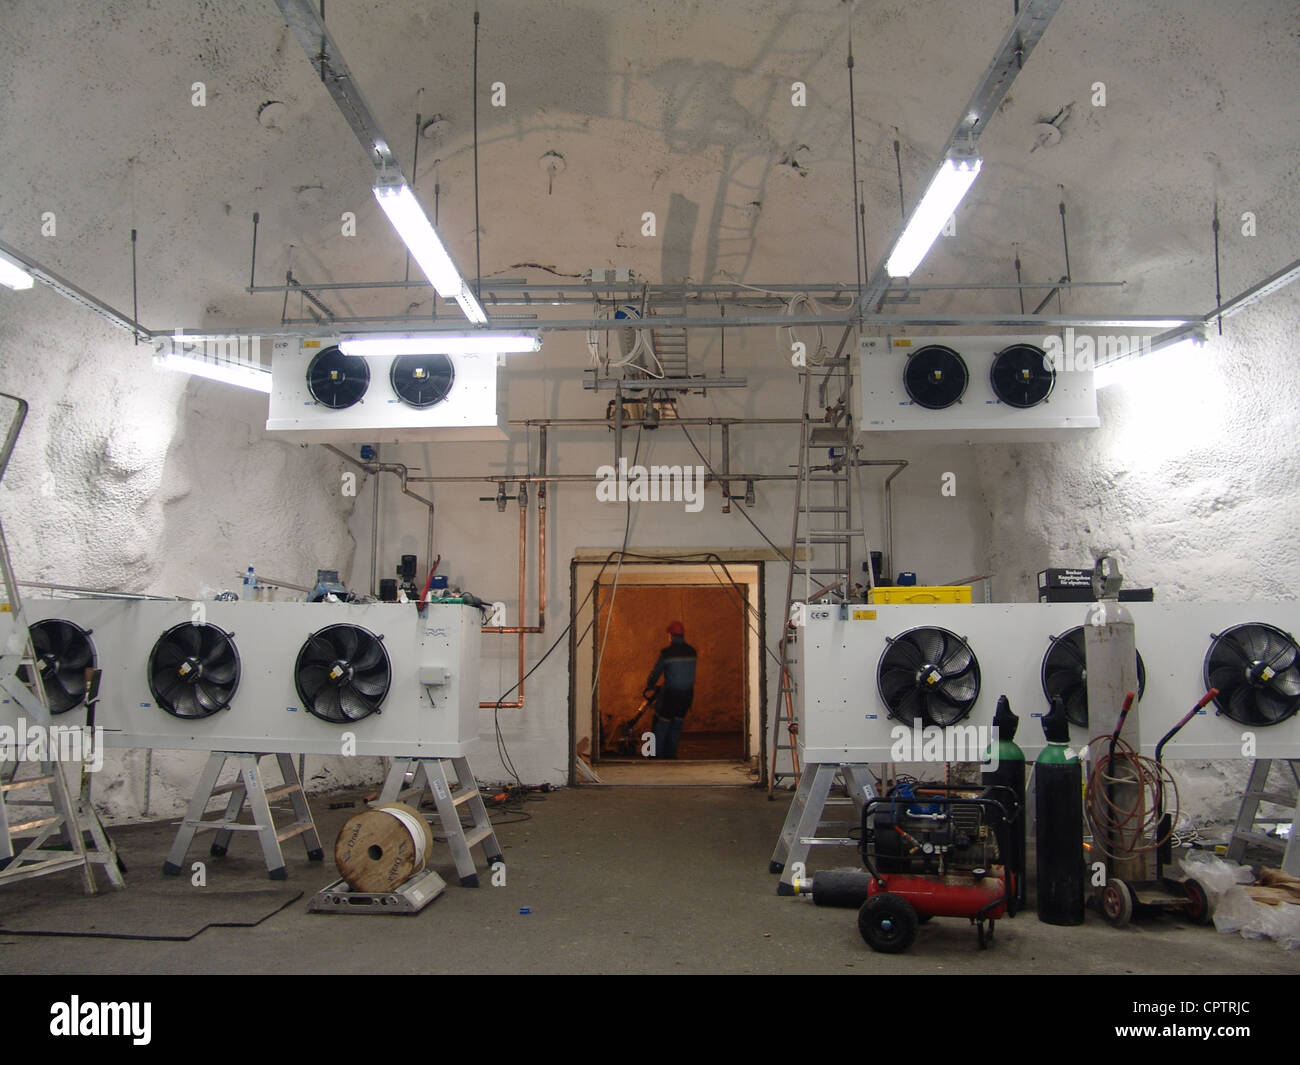 Cooling systems in one of the storage chambers at the Svalbard Global Seed Vault - Stock Image